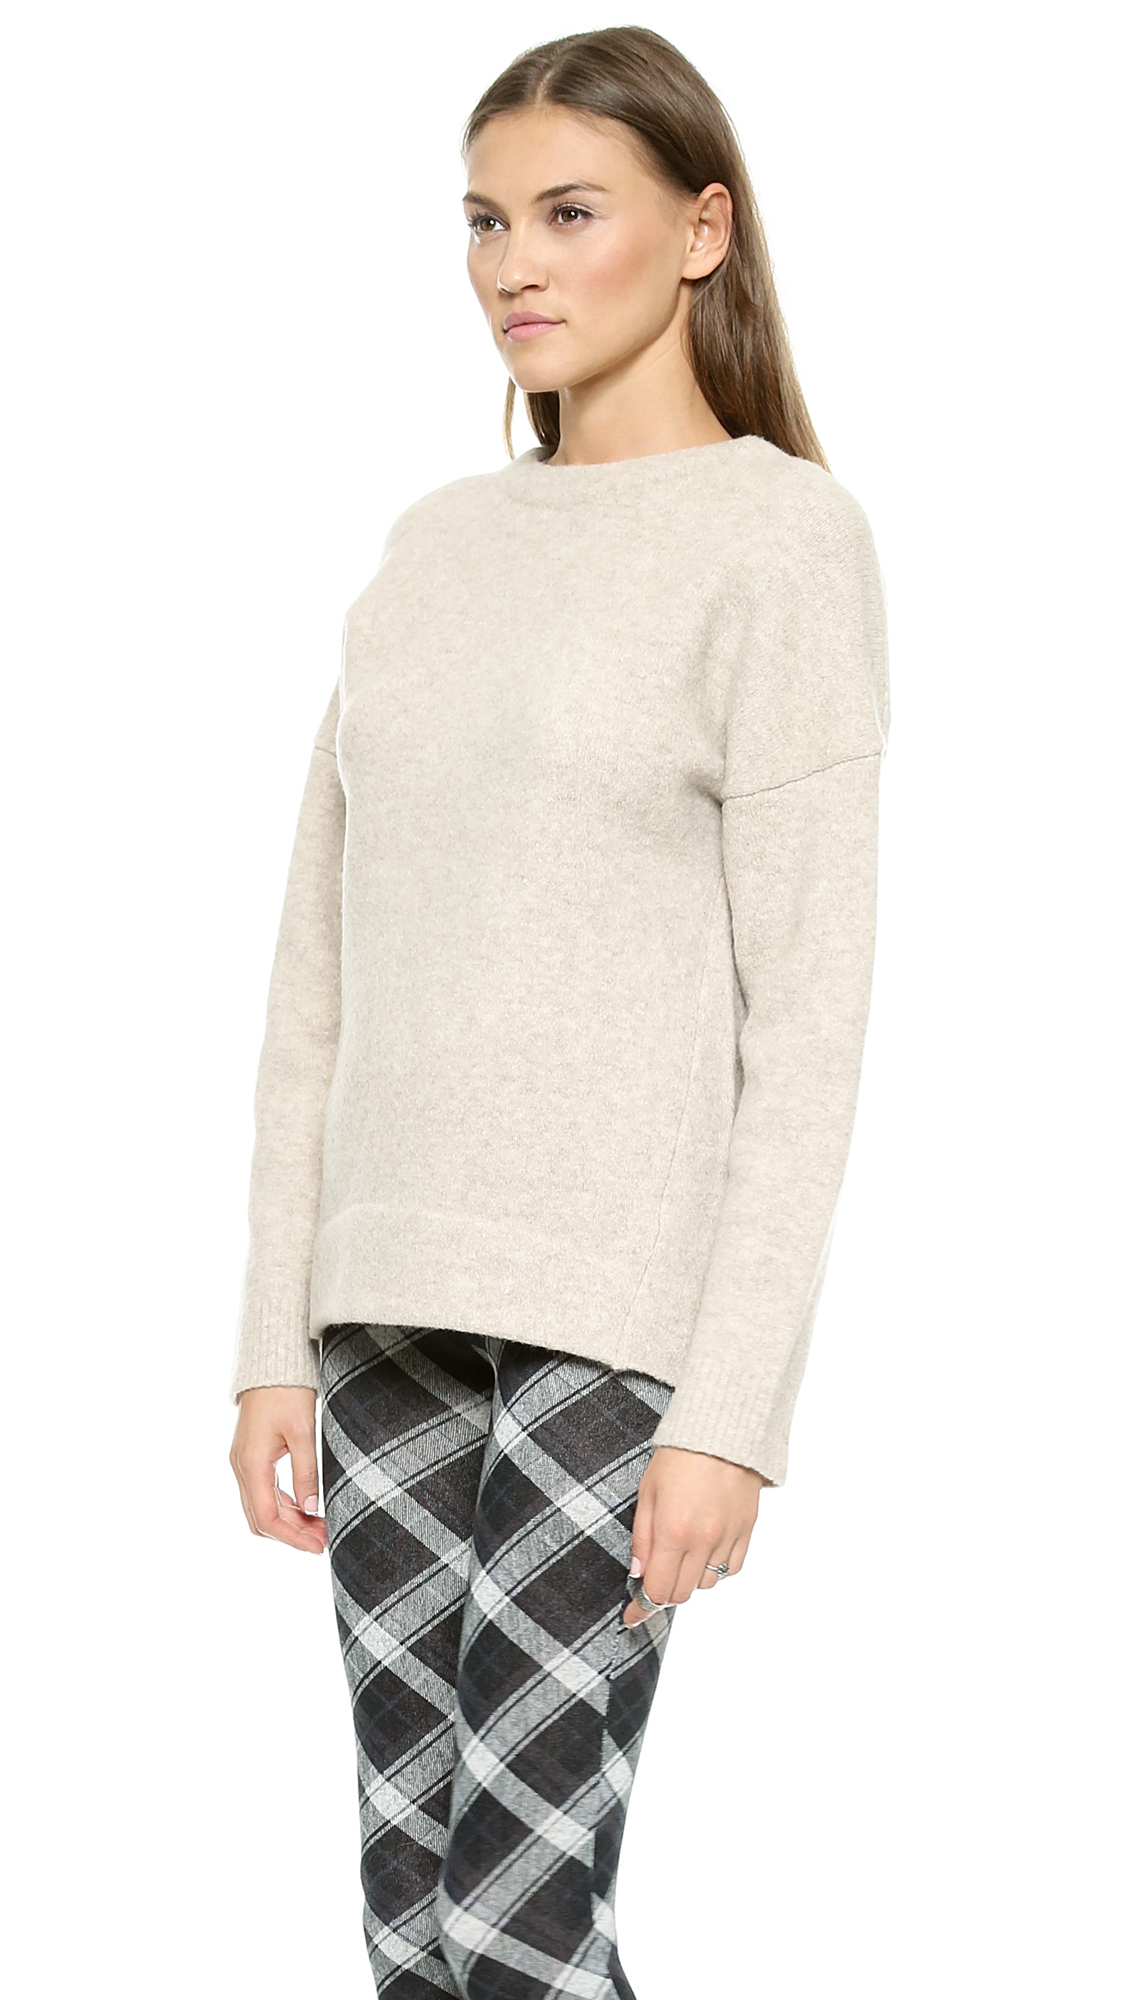 Jamison sweater sweater jeans and boots for Tenth avenue north t shirts